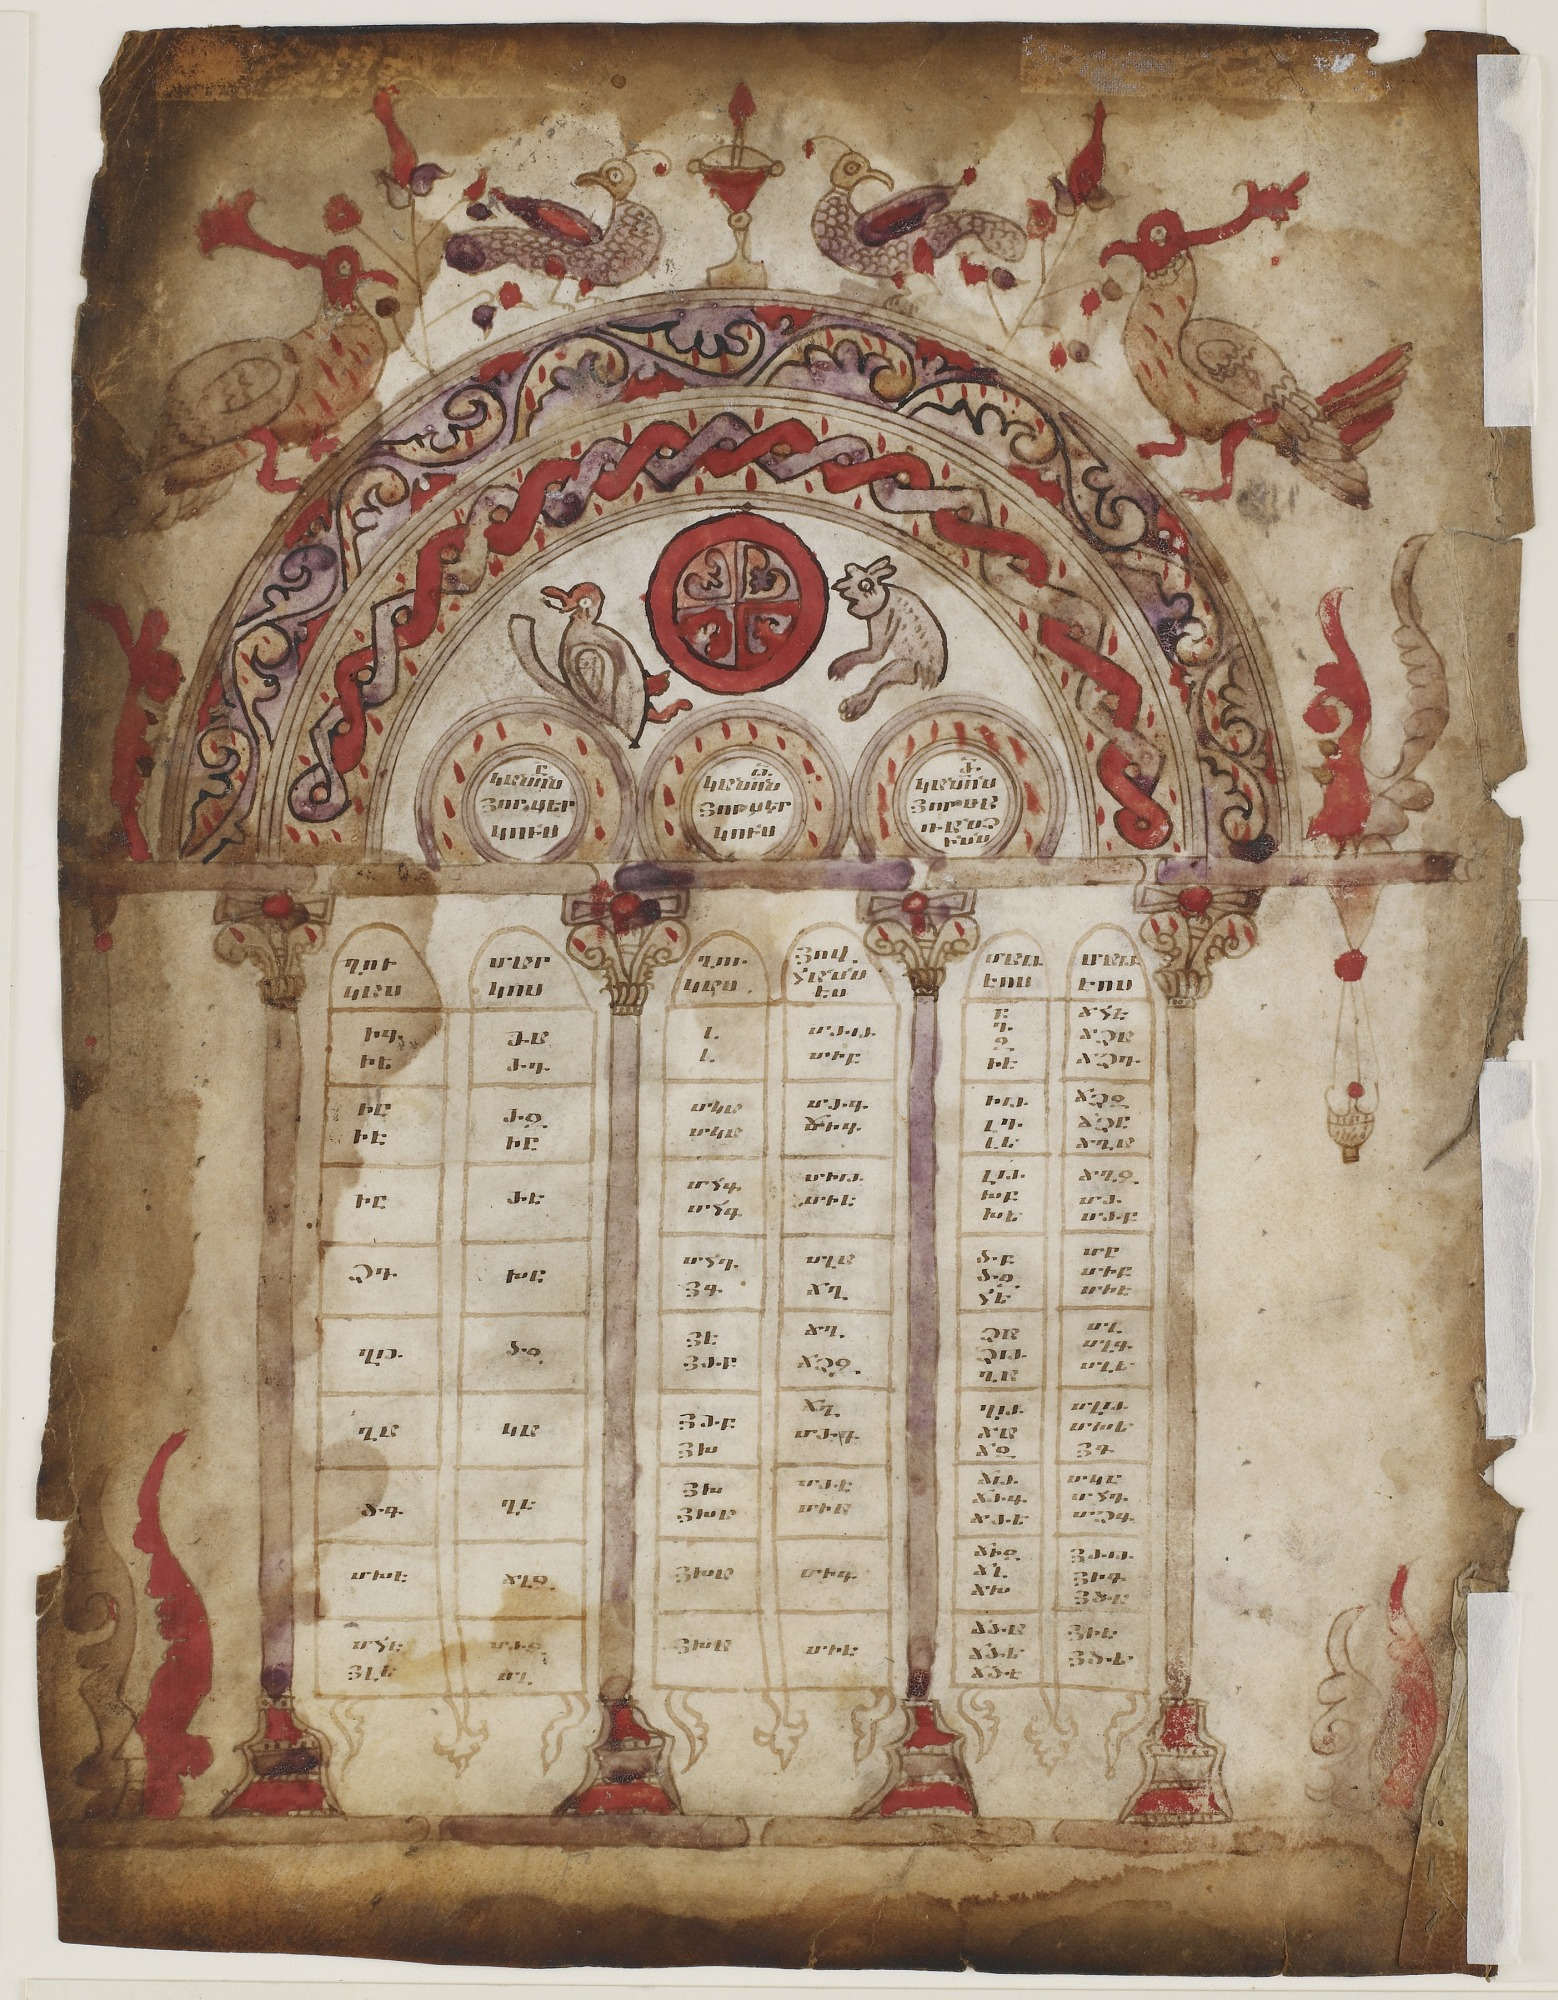 verso: Canon Table from a Gospel manuscript